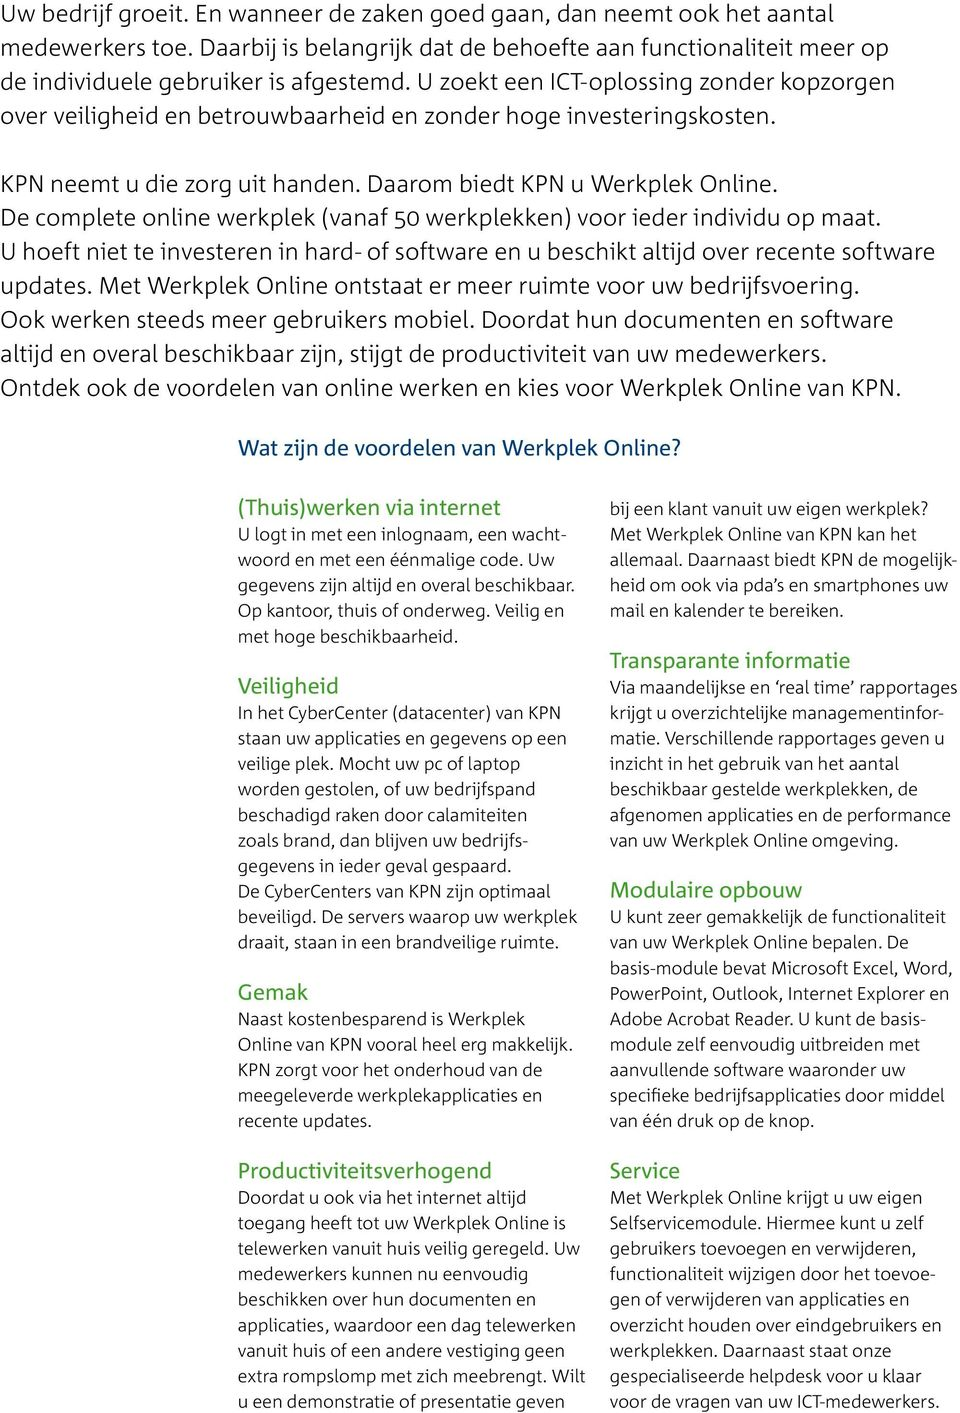 De complete online werkplek (vanaf 50 werkplekken) voor ieder individu op maat. U hoeft niet te investeren in hard- of software en u beschikt altijd over recente software updates.